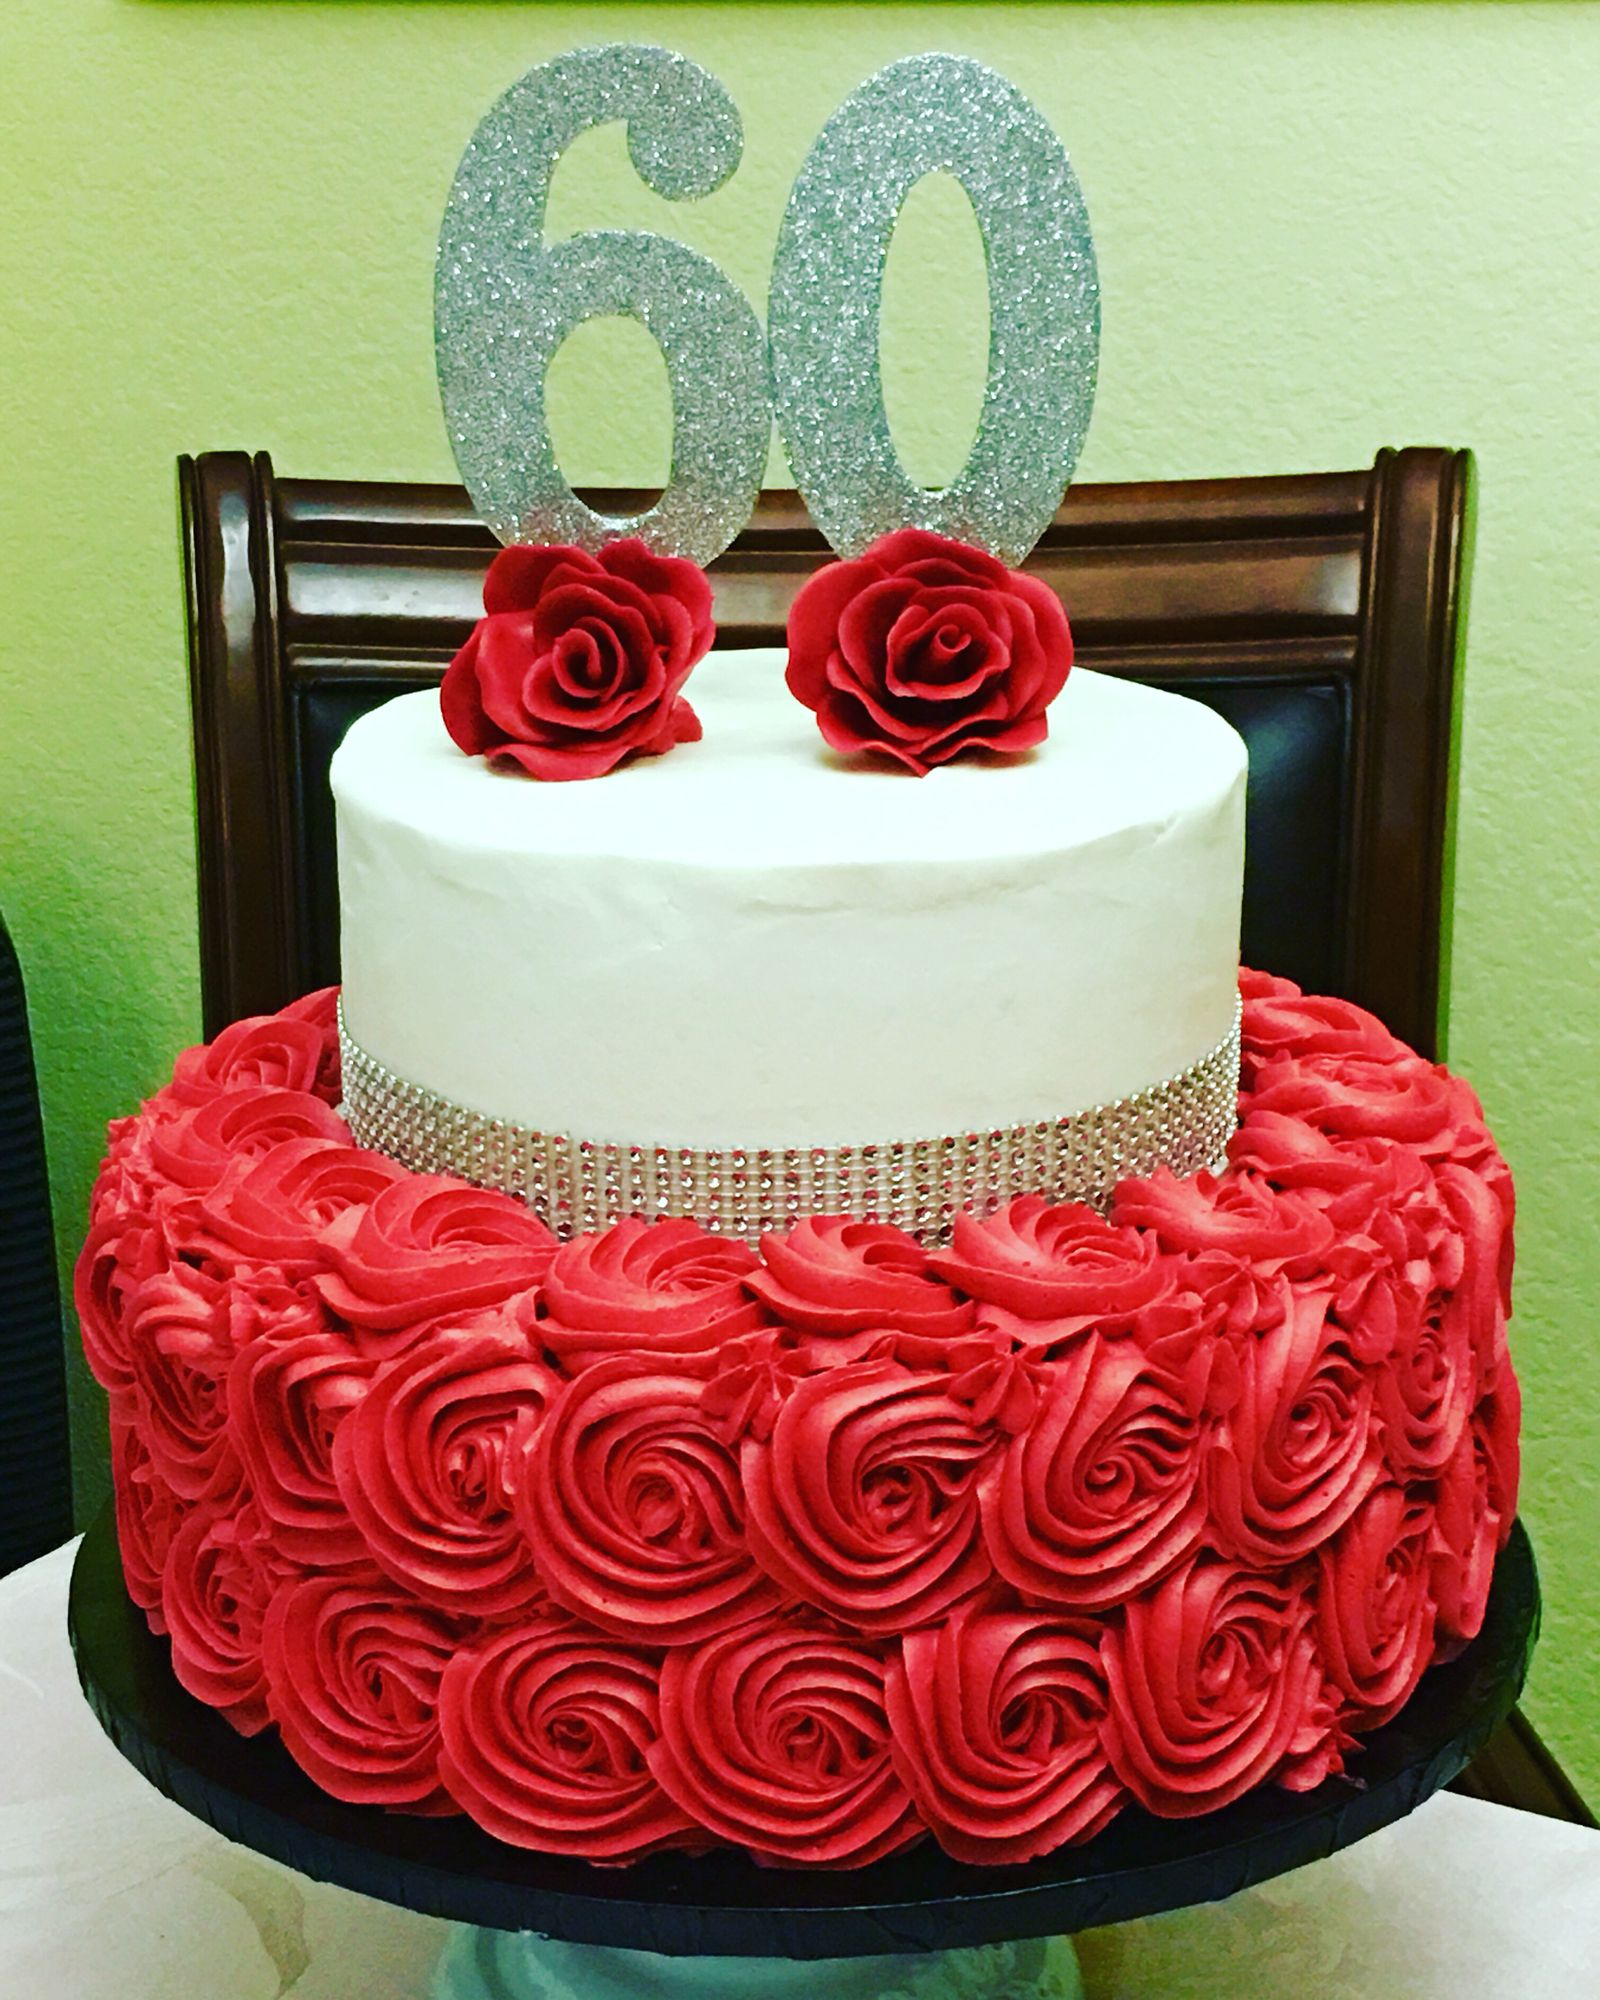 60th Birthday Cake Buttercream Red And Silver Rosettes